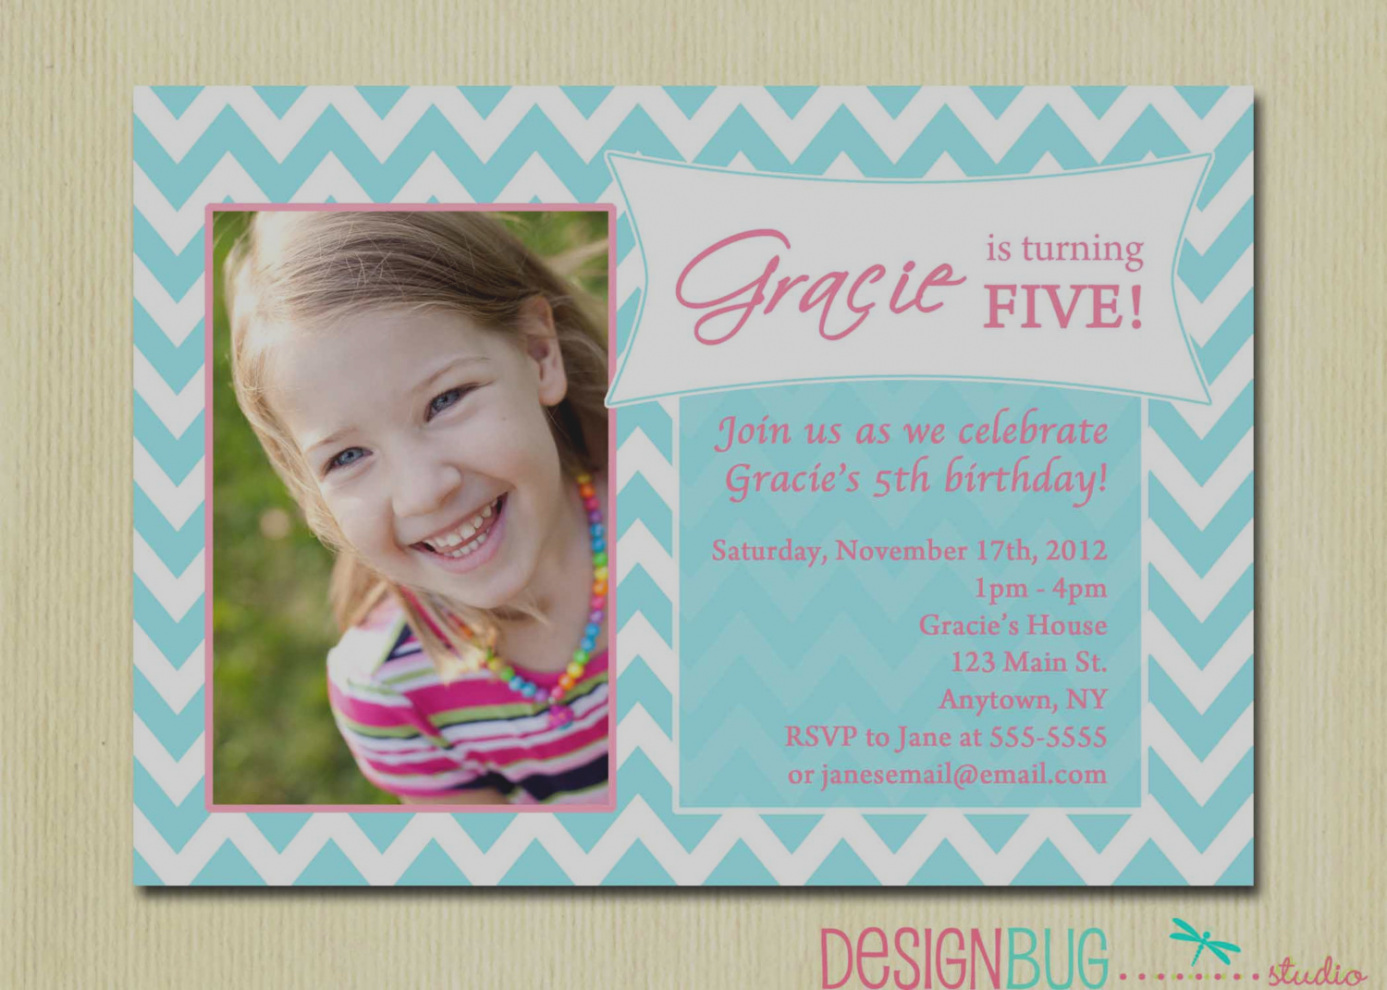 birthday card message for 3 year old boy ; amazing-of-5-year-old-birthday-card-messages-message-for-3-boy-il-fullxfull-408209747-hmn2